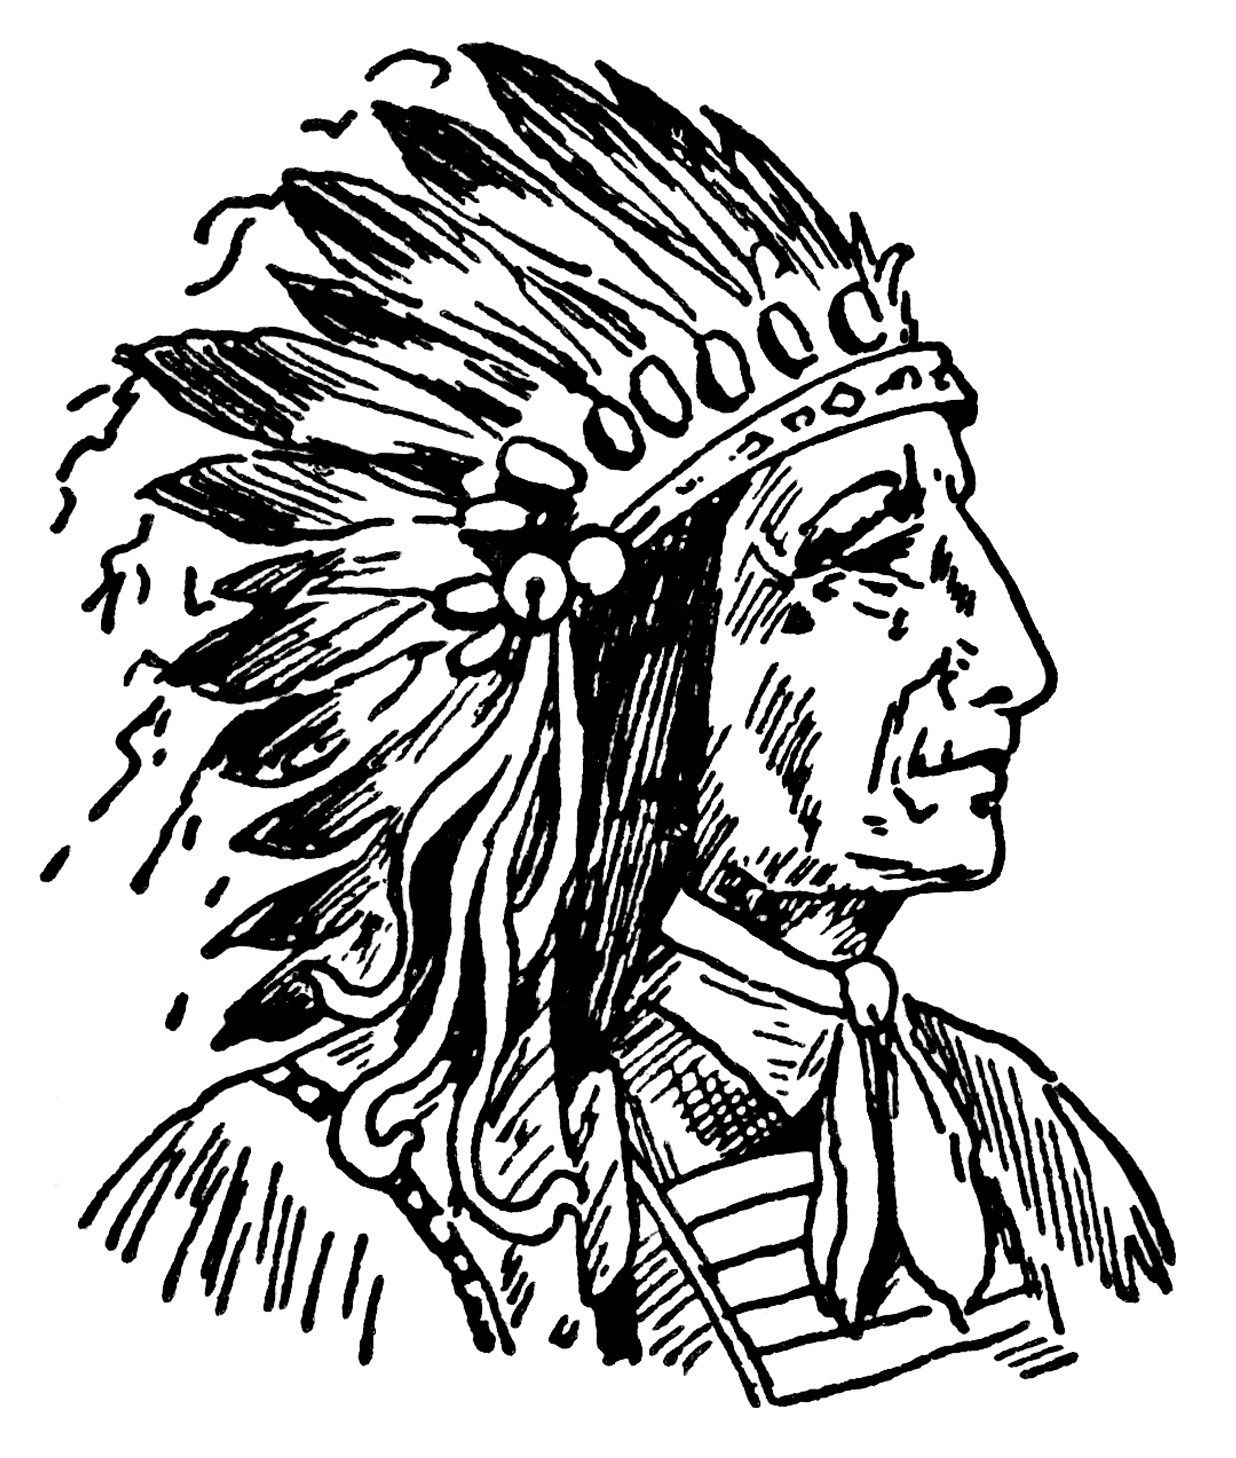 small resolution of indian chief clip art vintage native american illustration black and white clipart warrior brave graphics indian art sketch